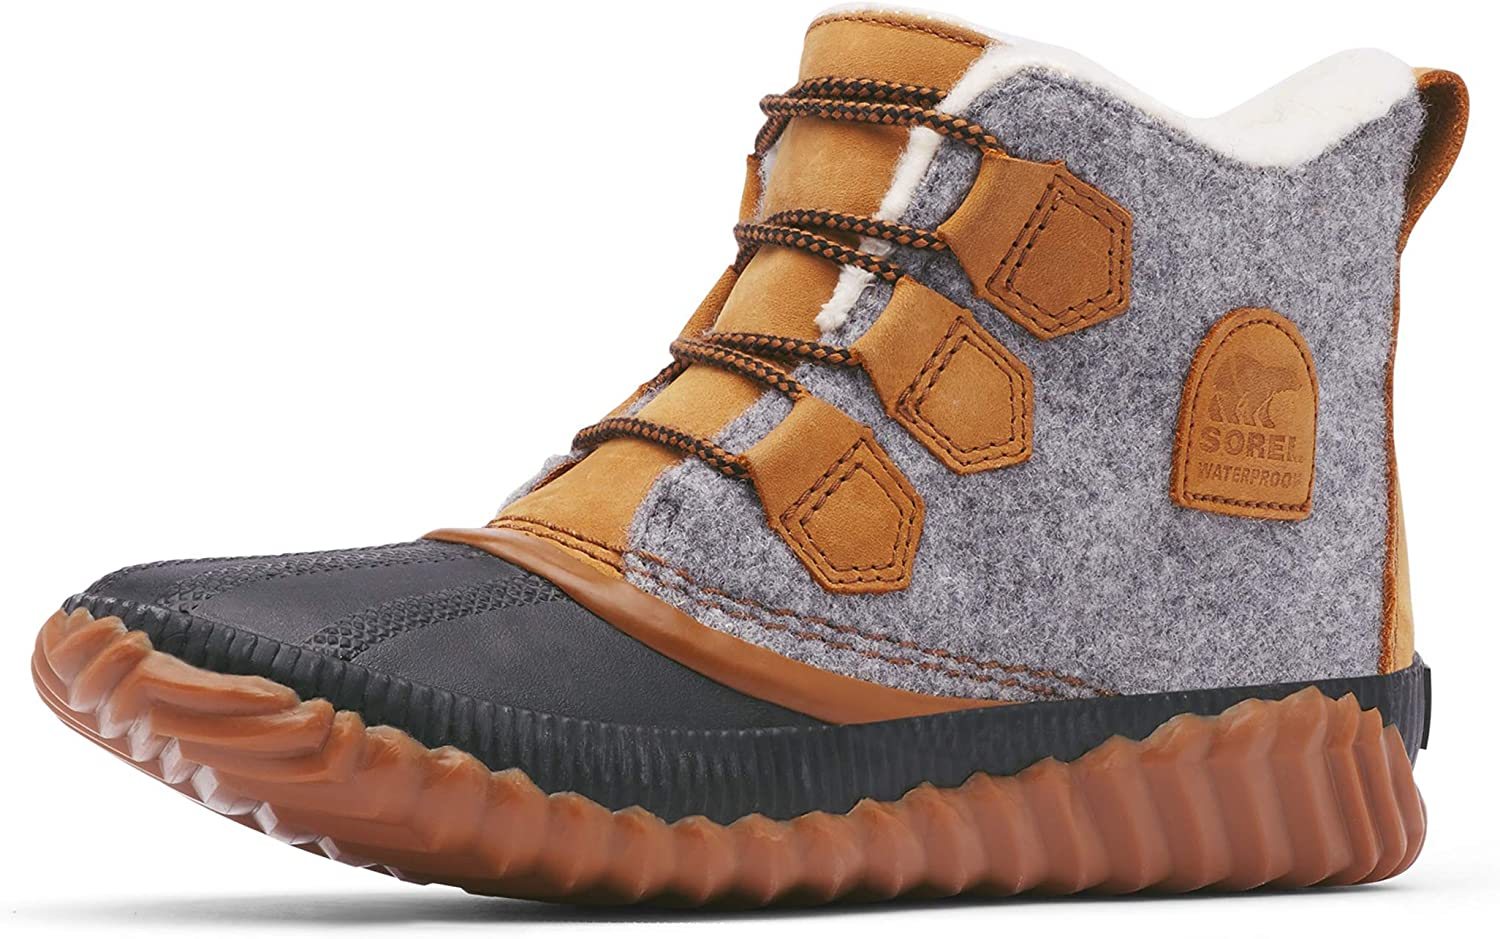 Sorel Women's Out 'N About Plus Boots shipfree Louisville-Jefferson County Mall